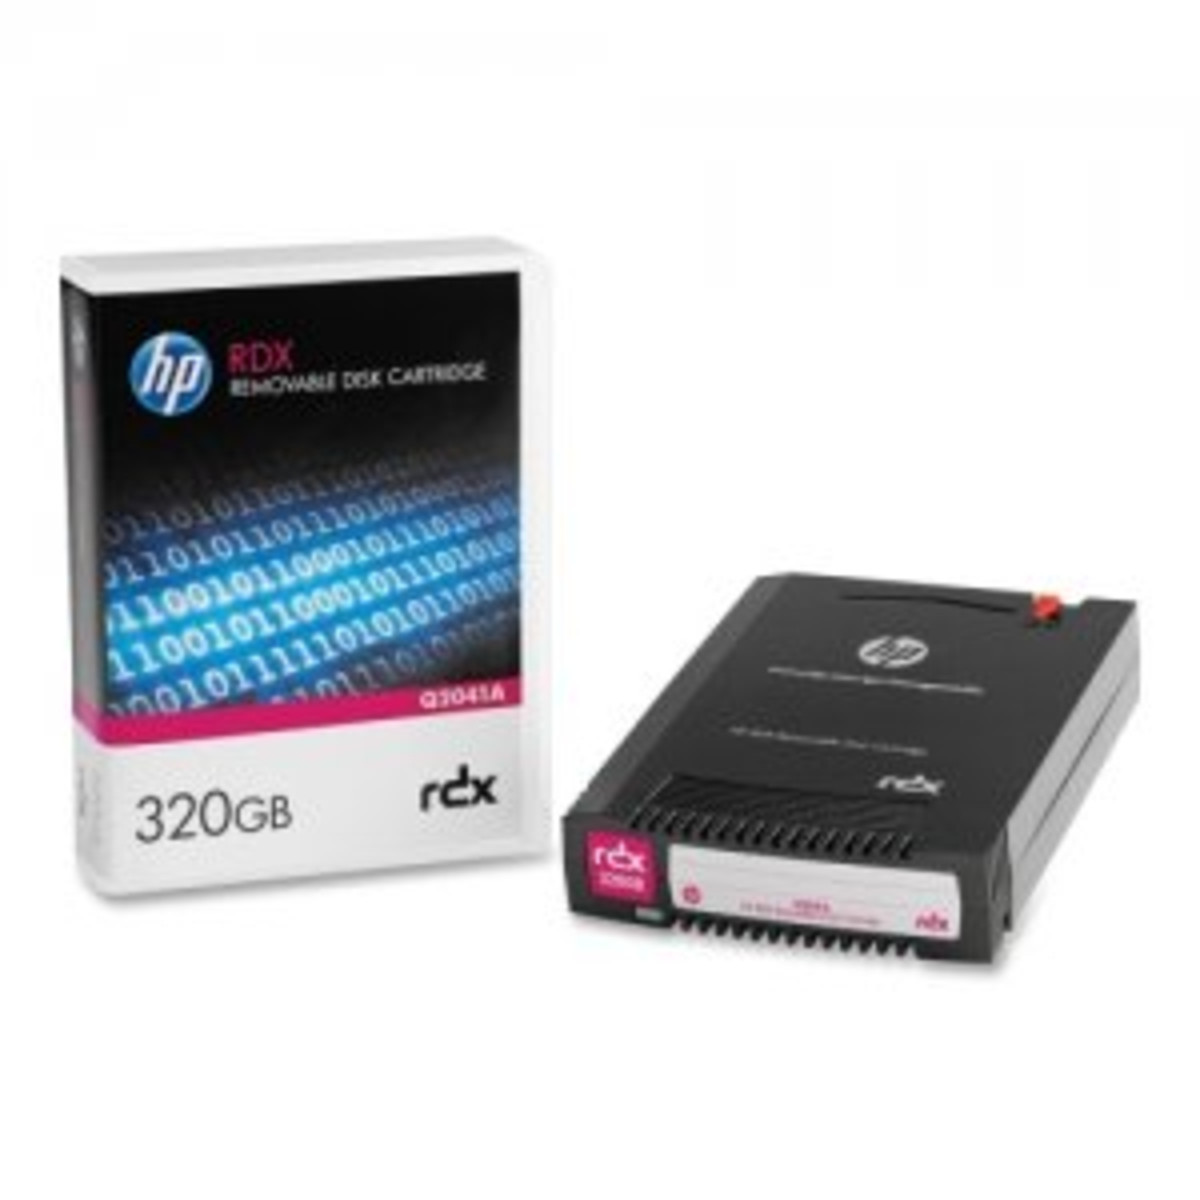 HP RDX 320GB Removable Disk Cartridge (Q2041A)